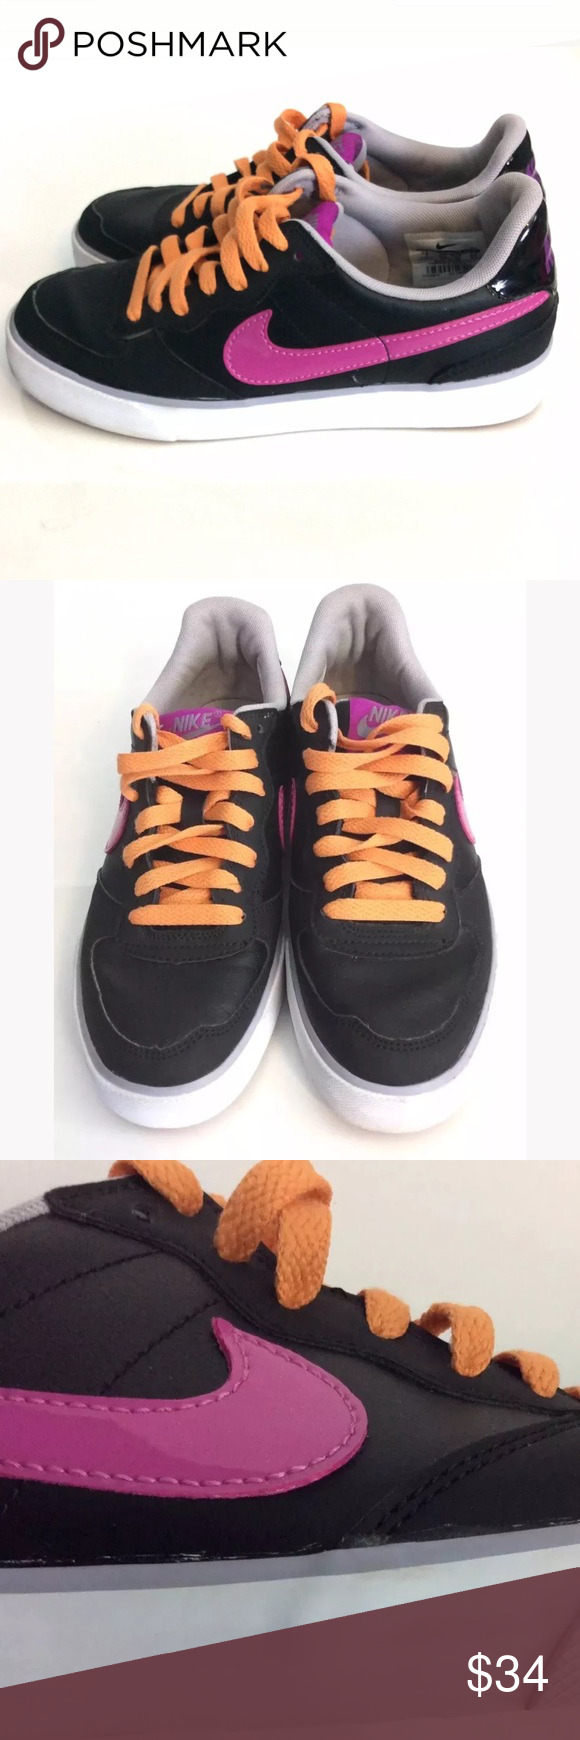 92bc64a3928d 🔥Nike Sweet Ace Sneakers Sz 7 Black and Magenta Nike Sweet Ace 83 Sneakers  features